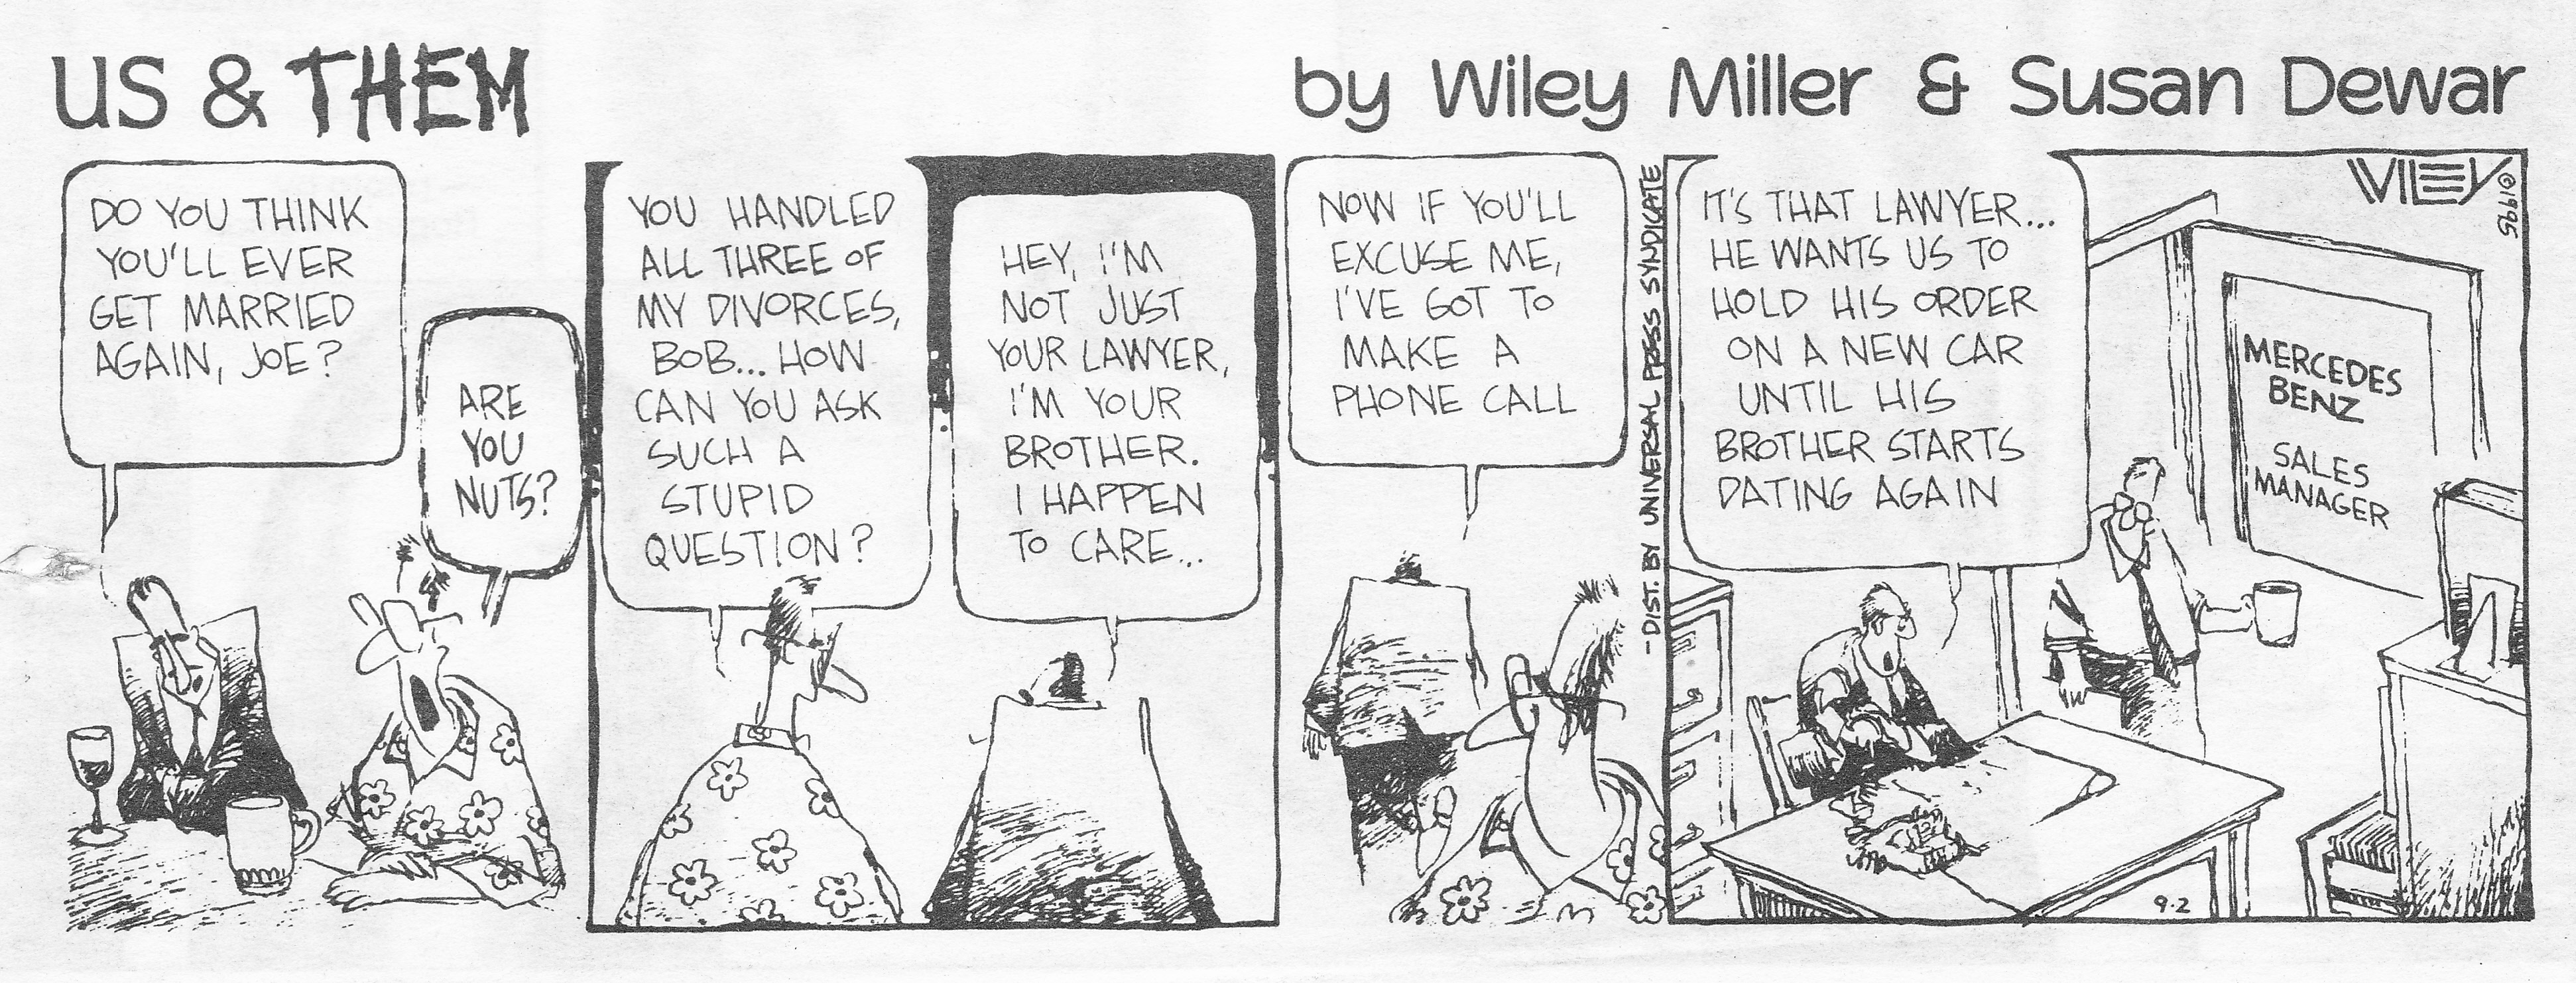 C:\Users\Robert\Documents\CARTOONING ILLUSTRATION ANIMATION\IMAGE CARTOON\IMAGE CARTOON U\US & THEM,             Miller Wiley Toronto Sun, 2 Sept 1995.jpg